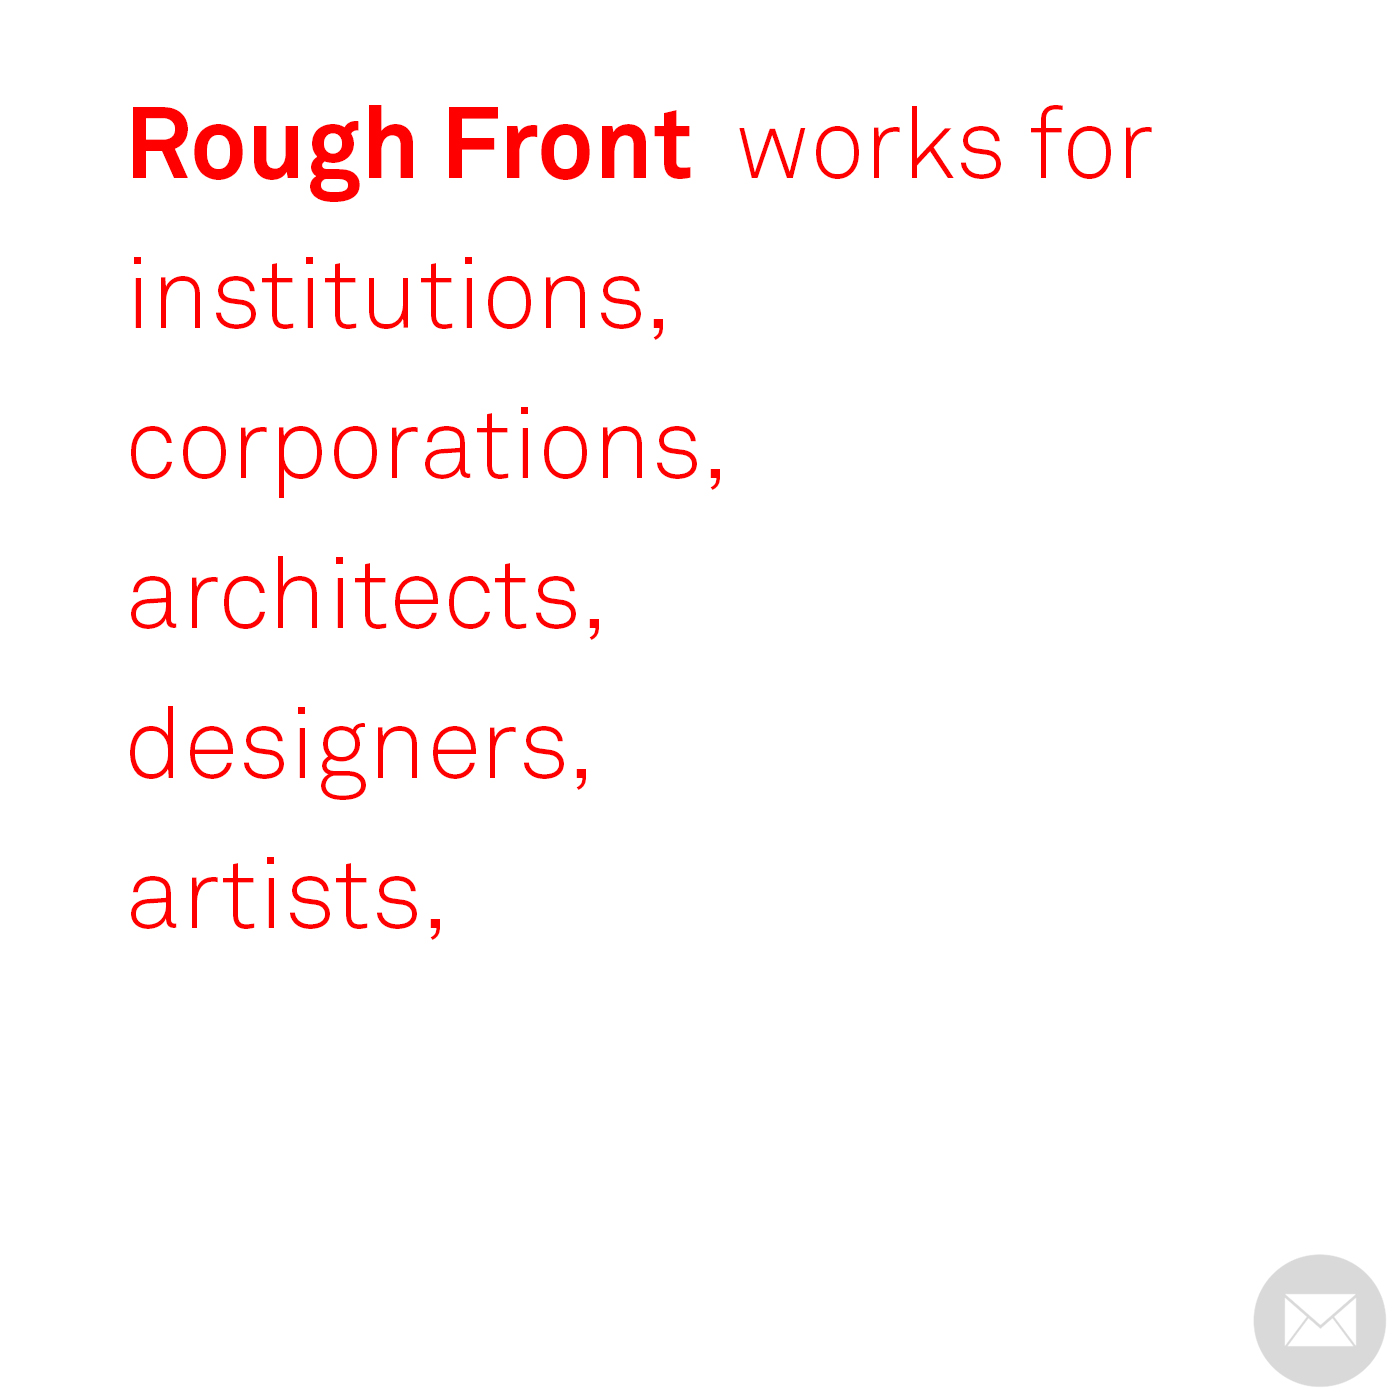 Rough Front is -envelope- 015.jpg